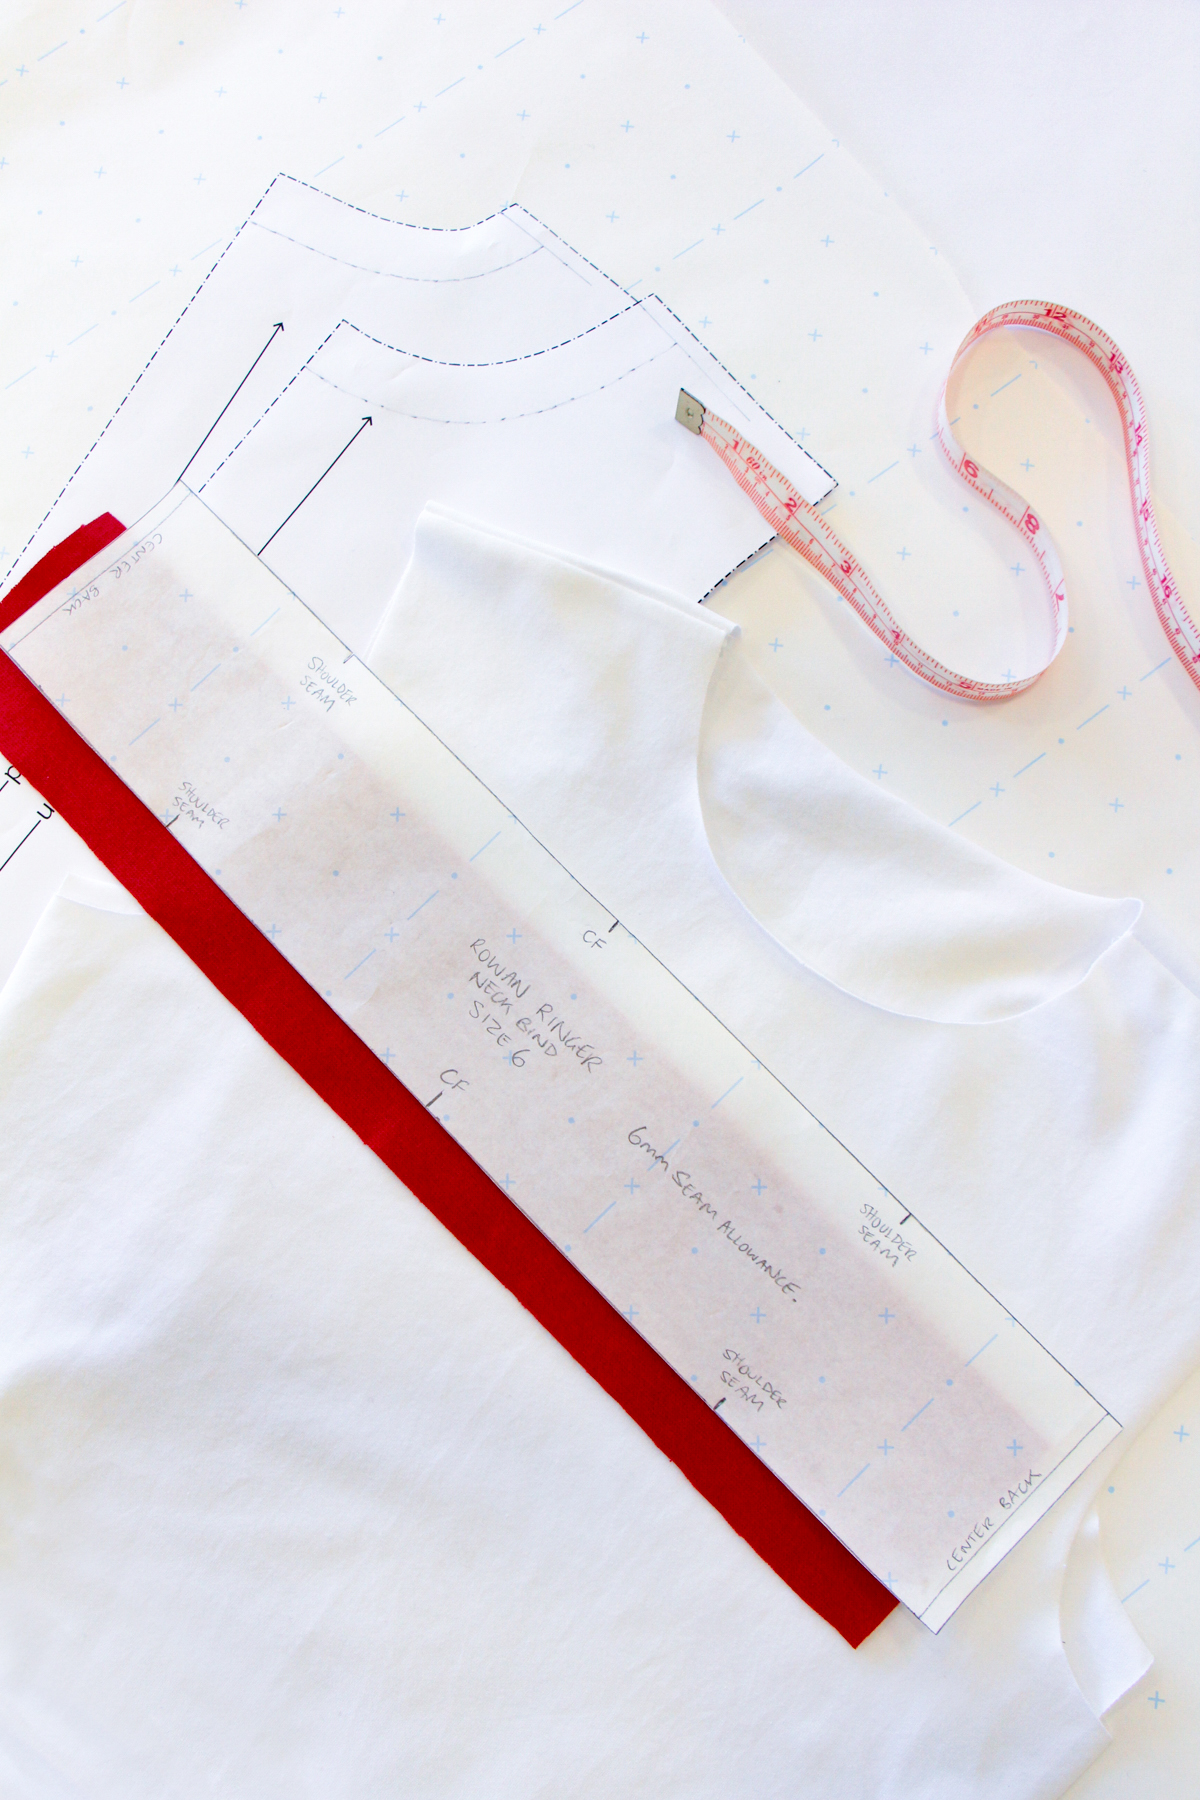 How To Make A Rowan Ringer Tee - Method 2 - The Megan Nielsen Neckbind